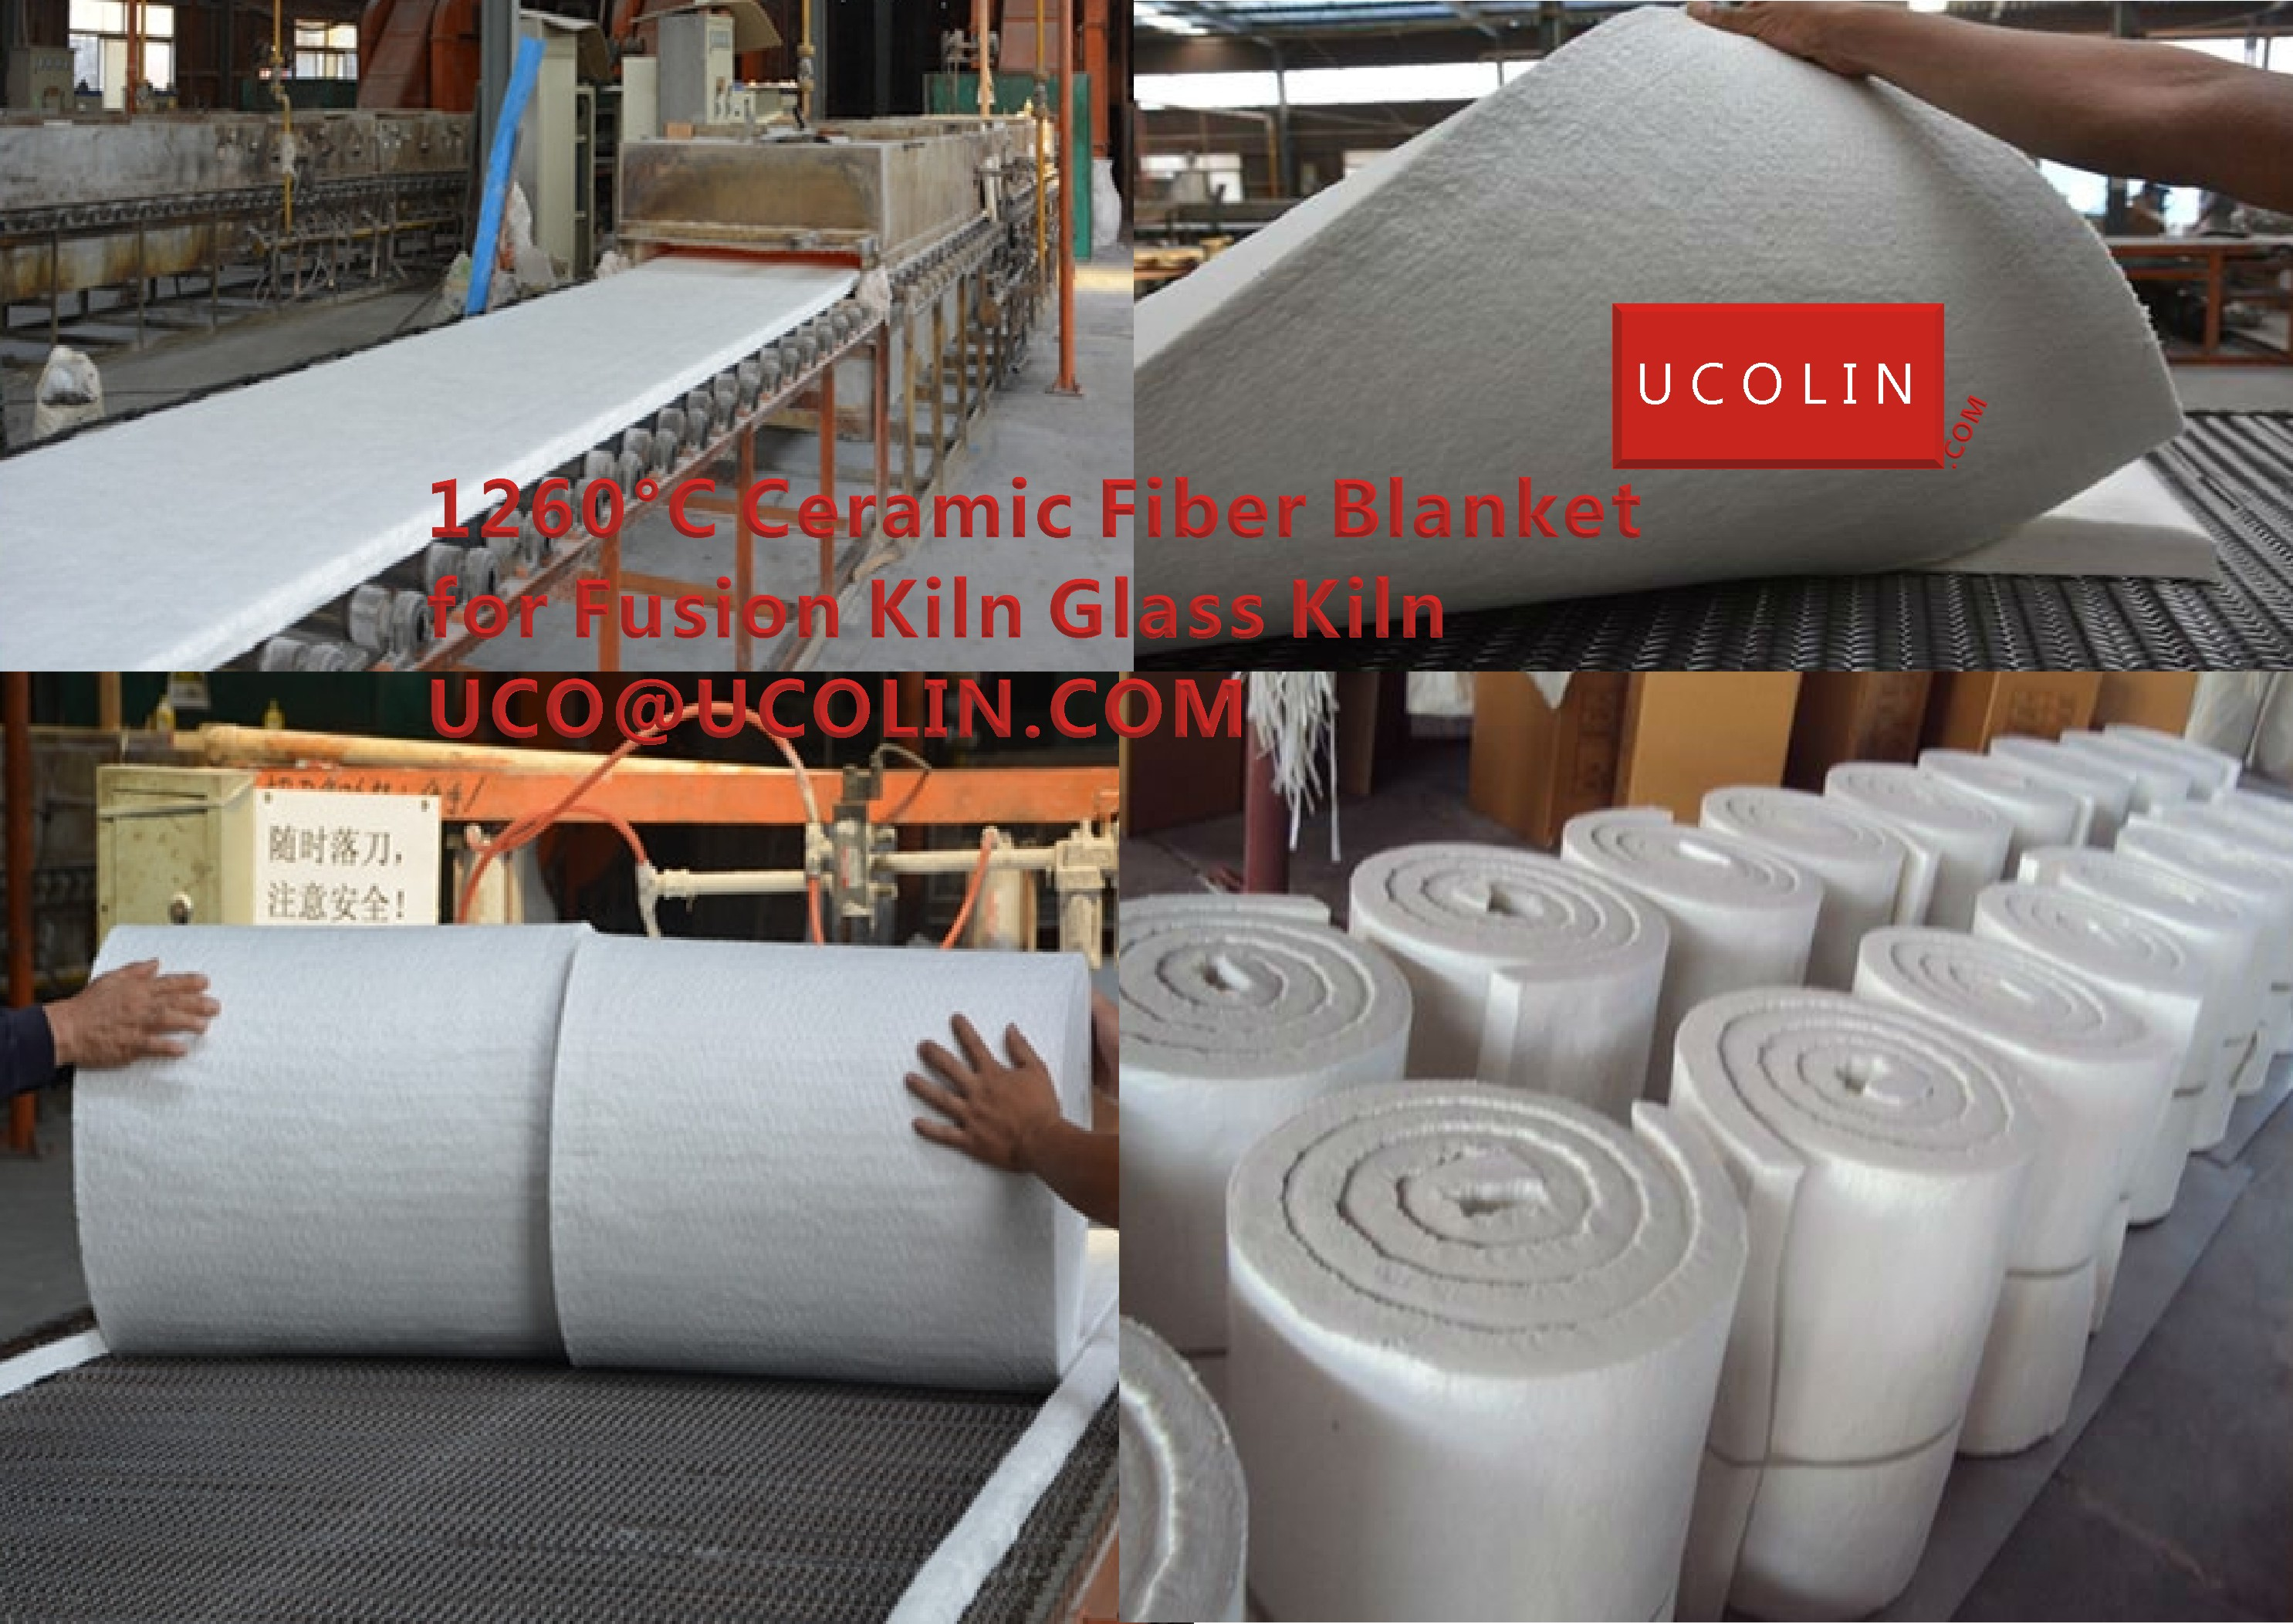 1260°C Ceramic Fiber Blanket for Fusion Kiln Glass Kiln